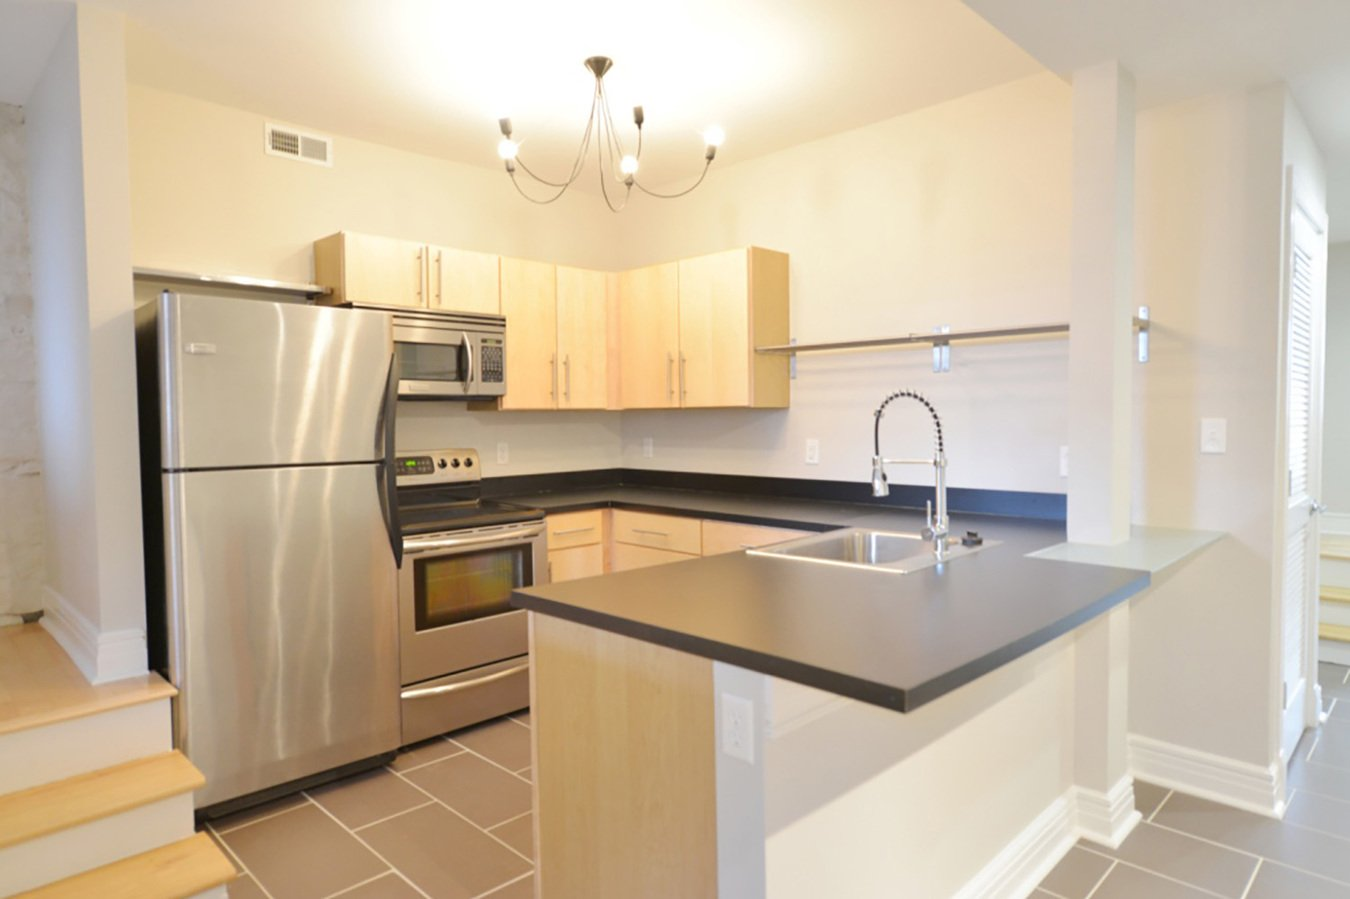 2 Bedrooms 1 Bathroom Apartment for rent at Melrose Apartments in St Louis, MO